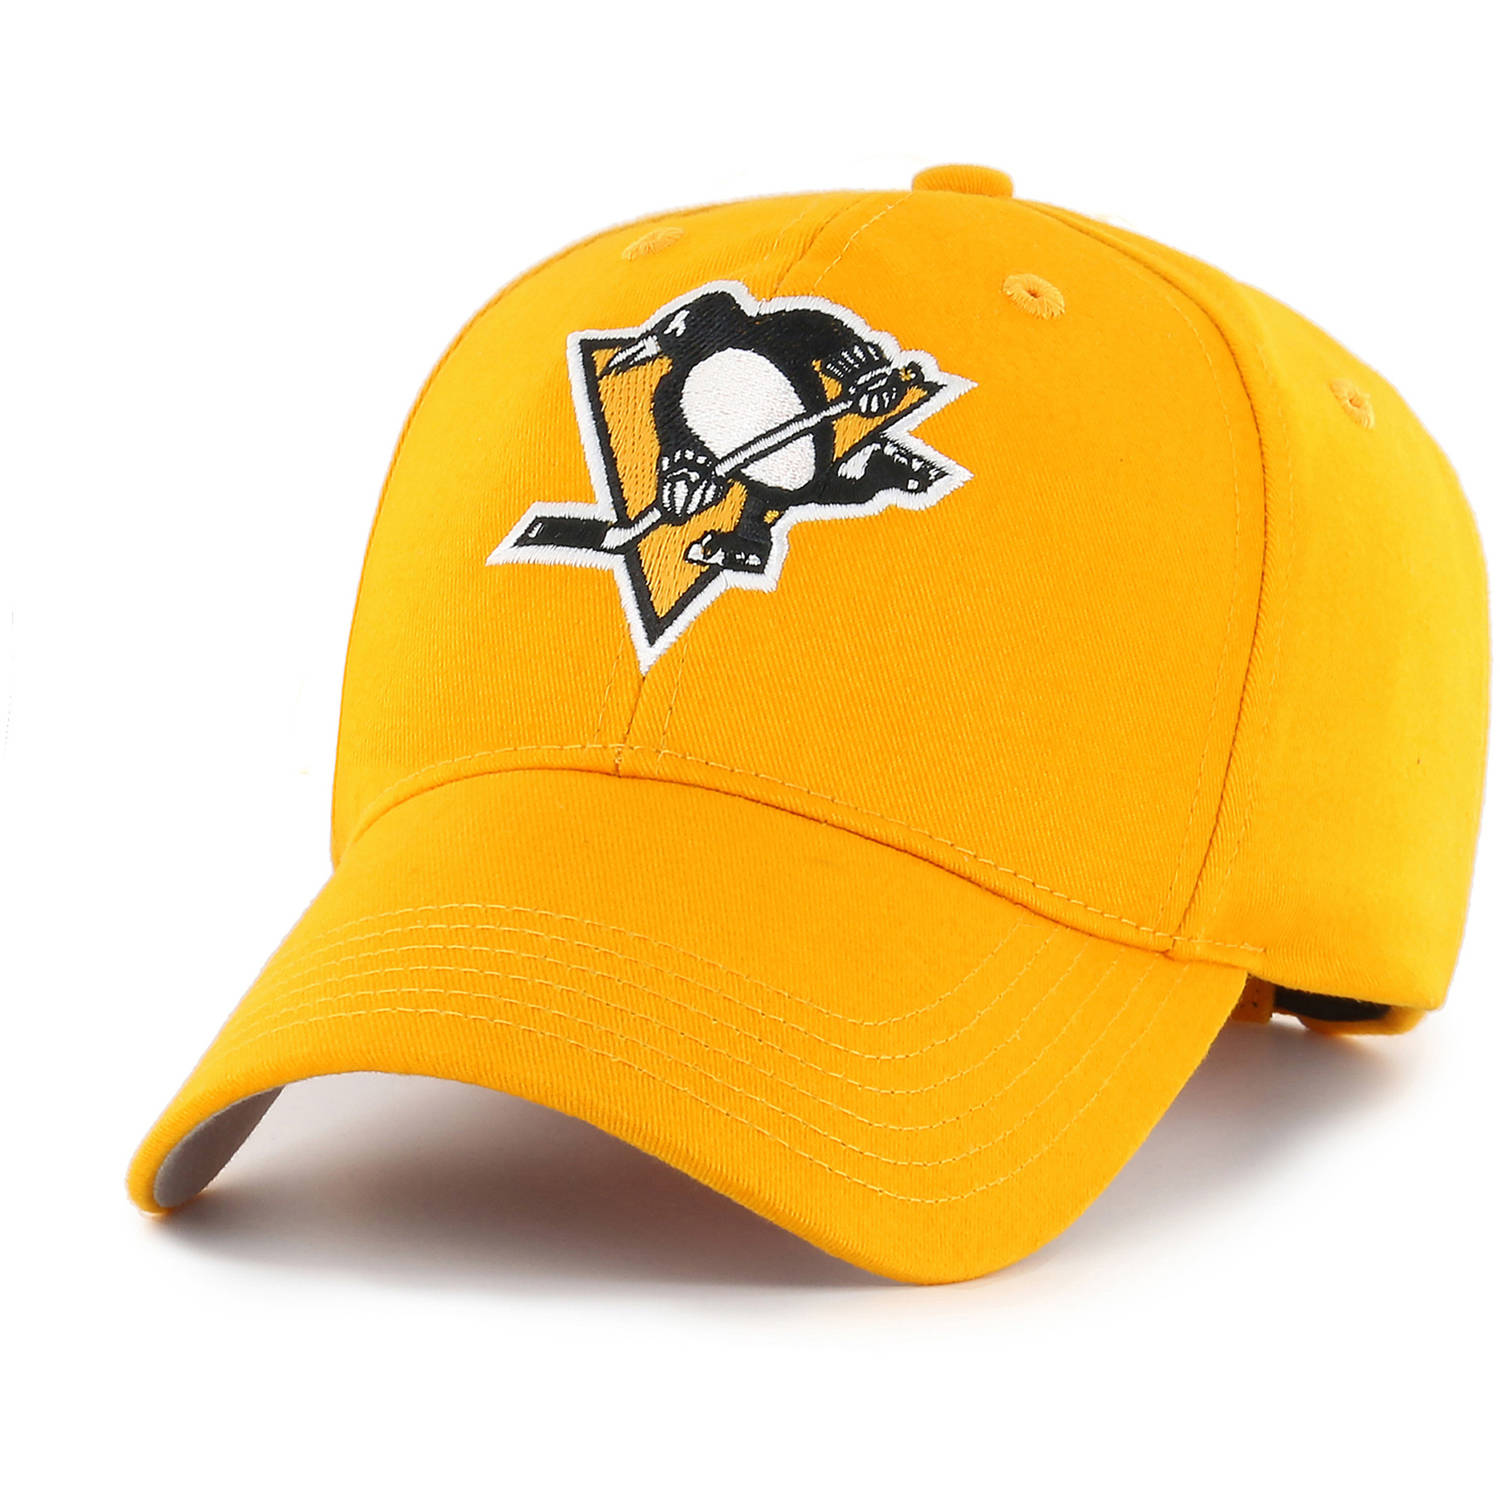 b3ff8c214 ... sweden nhl pittsburgh penguins basic cap hat by fan favorite 9820e  42346 ...